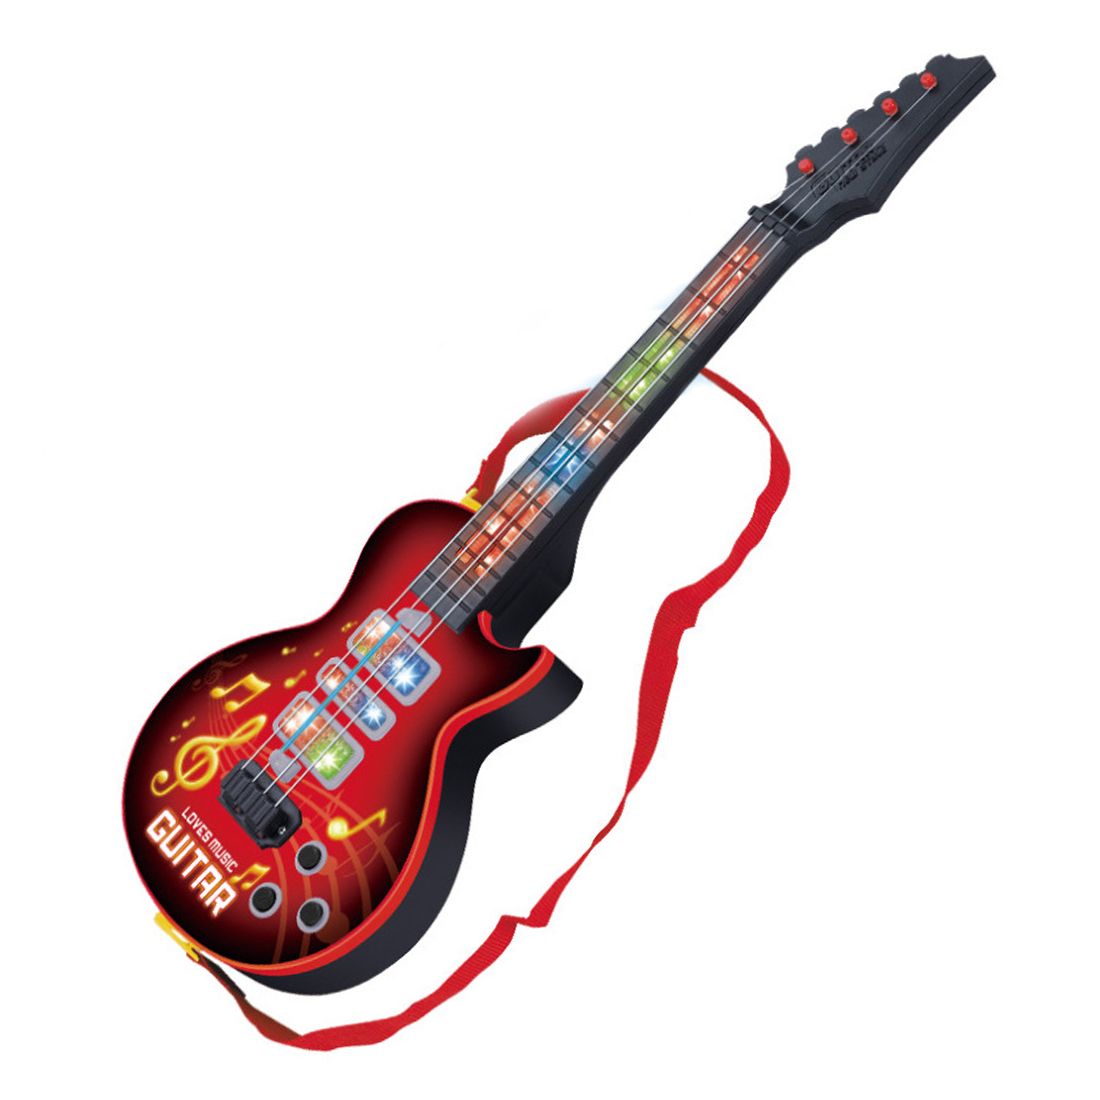 Hiqh-Quality-4-Strings-Music-Electric-Guitar-Kids-Musical-Instruments-Educational-Toys-For-Children-juguetes-As-New-Year-Gift-1